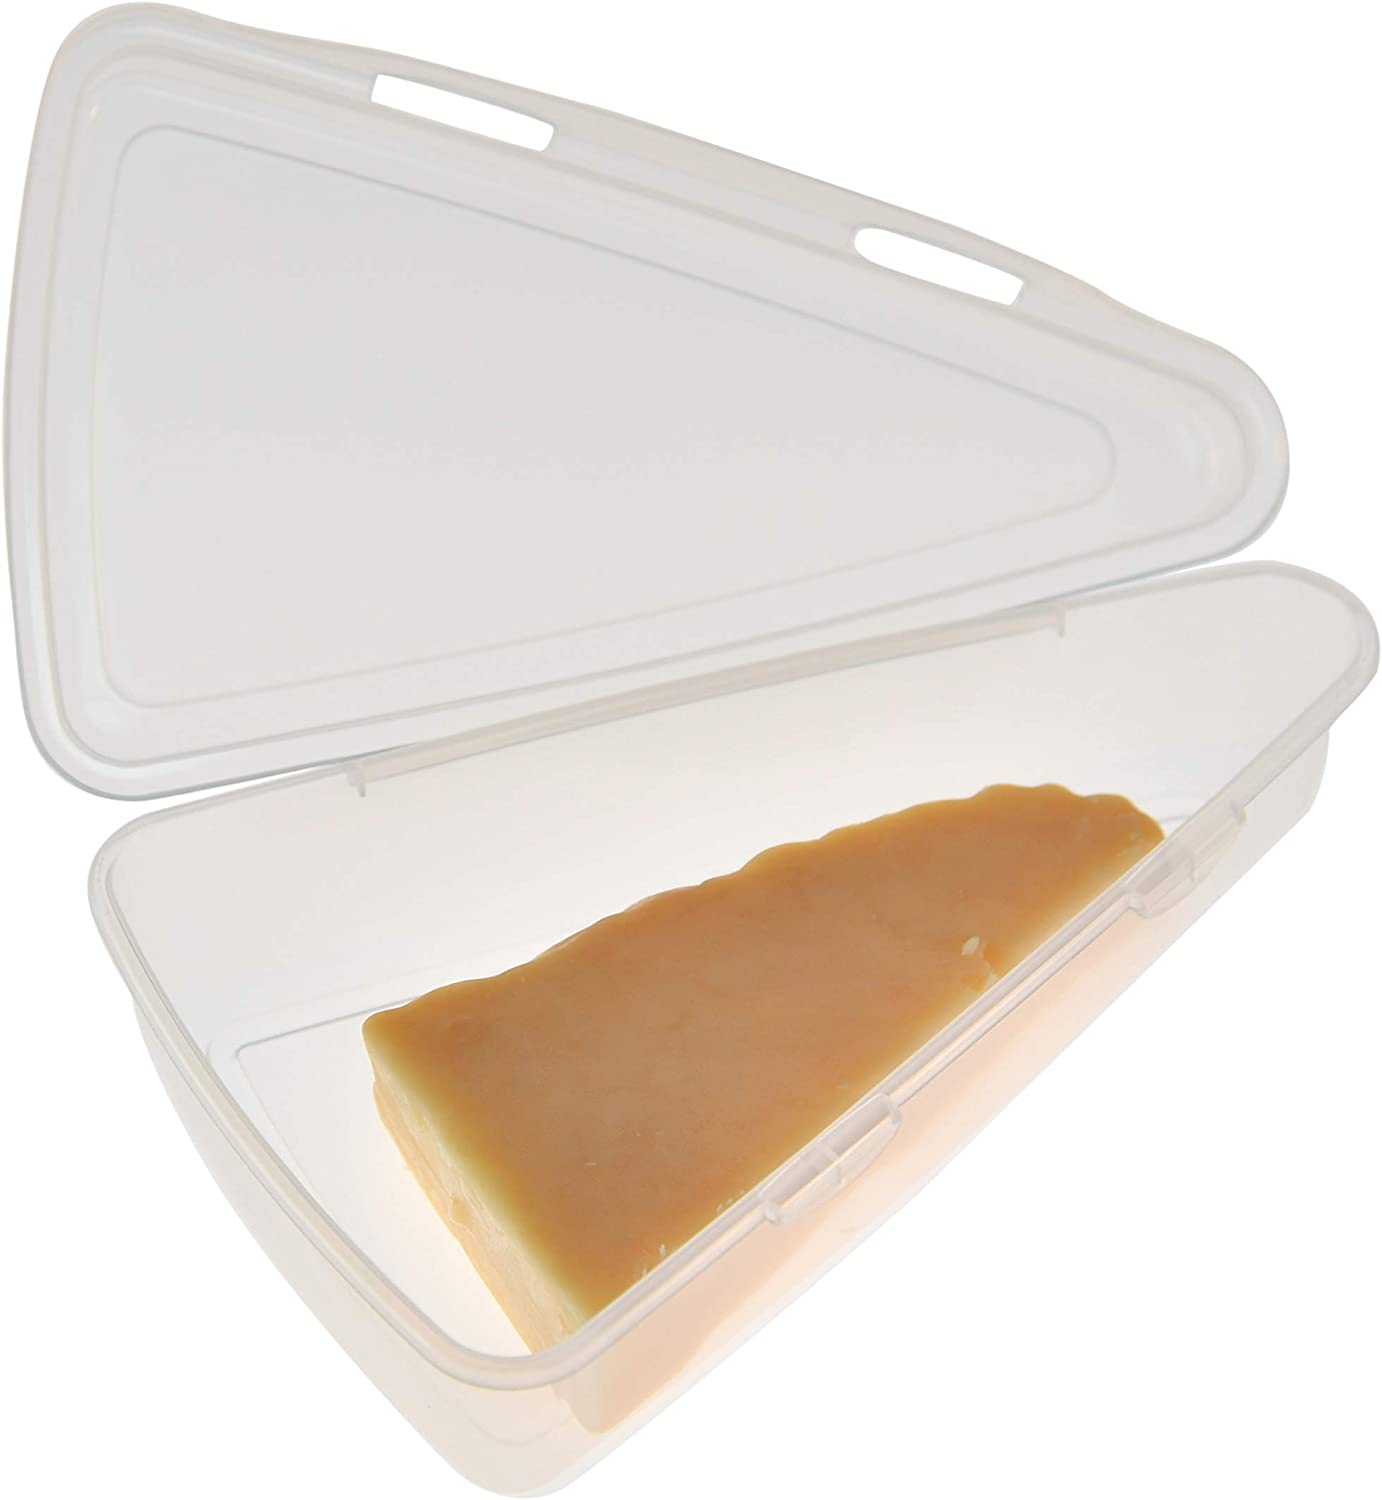 Home-X Triangle Cheese Container, Clear Plastic to-Go Containers for Cheese Wedges, Cake, and Pie Slices